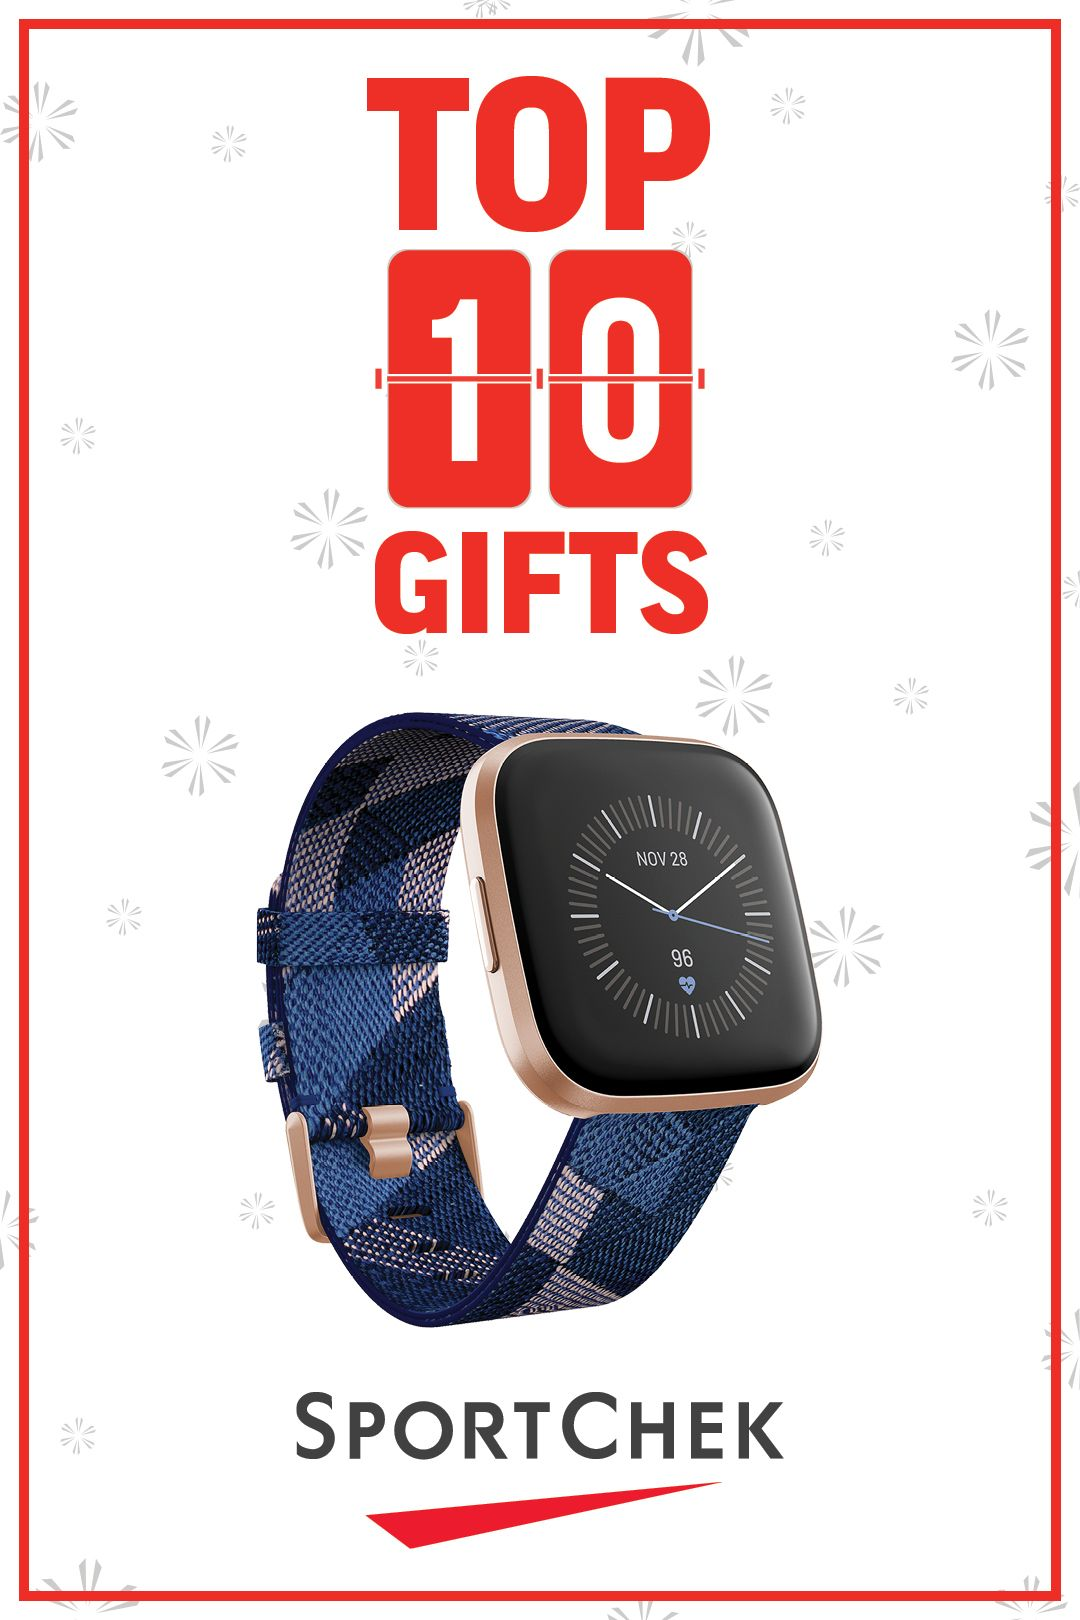 Pin on Top Gifts 2019